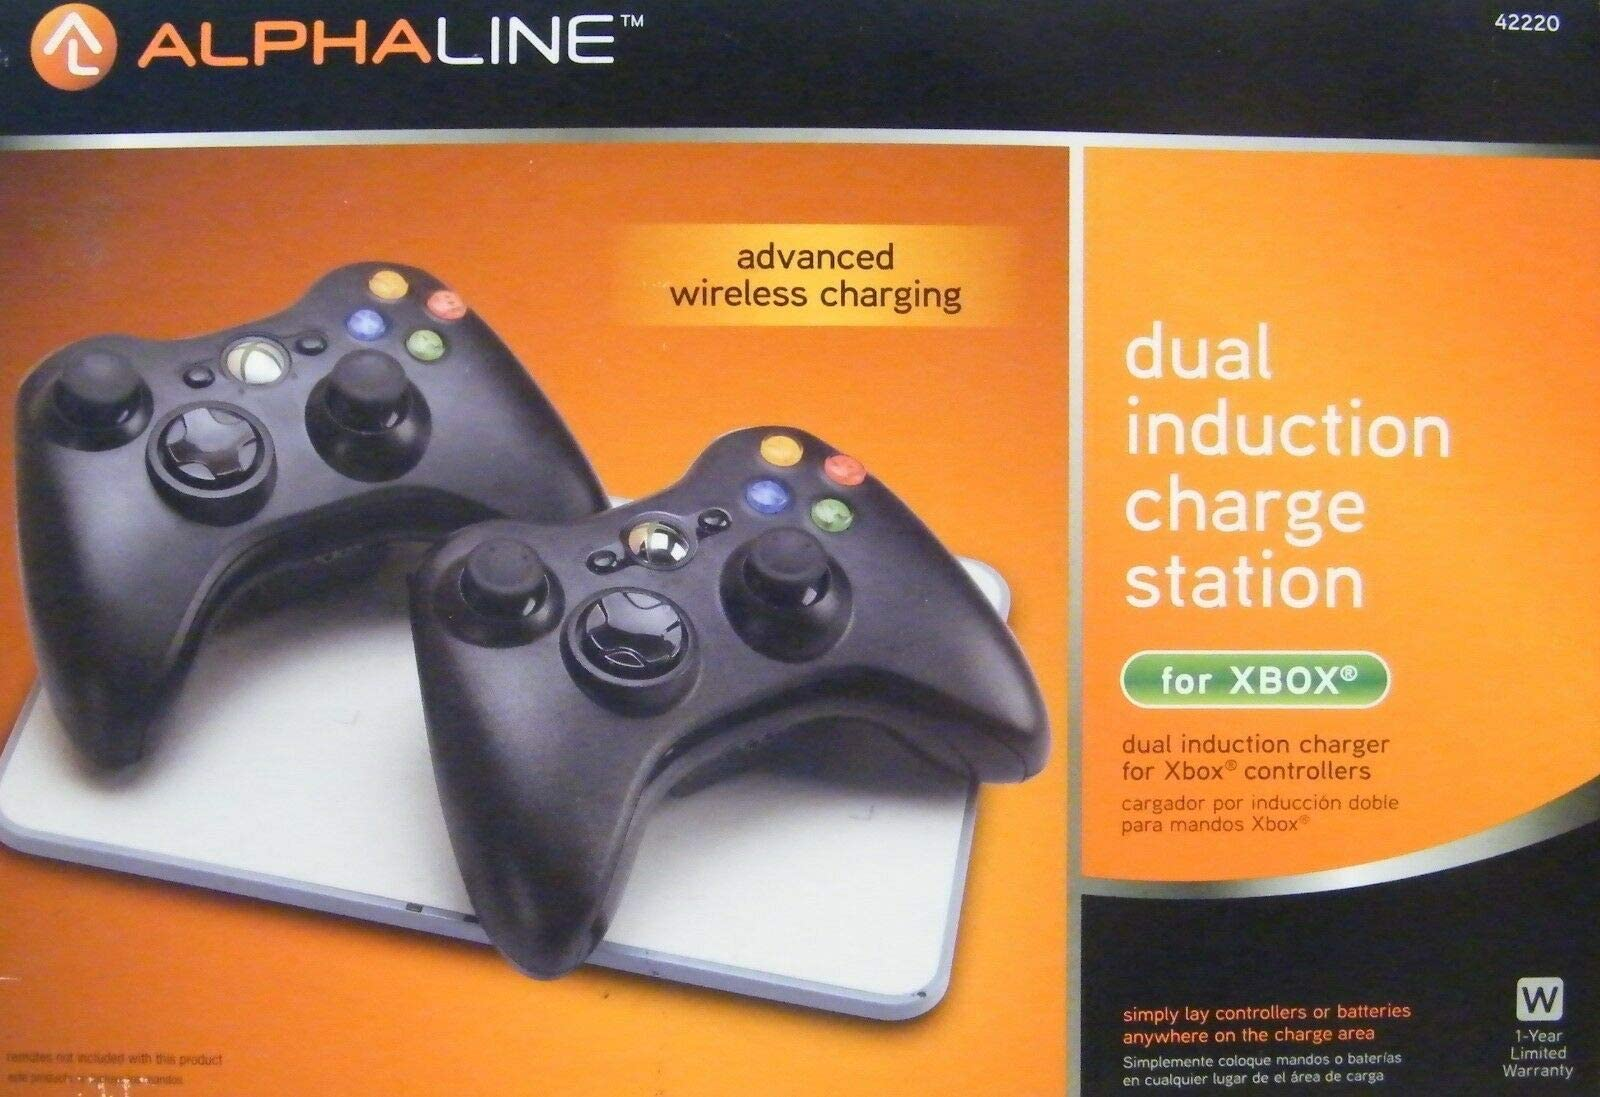 Amazon.com: Alphaline- Dual Induction Charge Station for ...